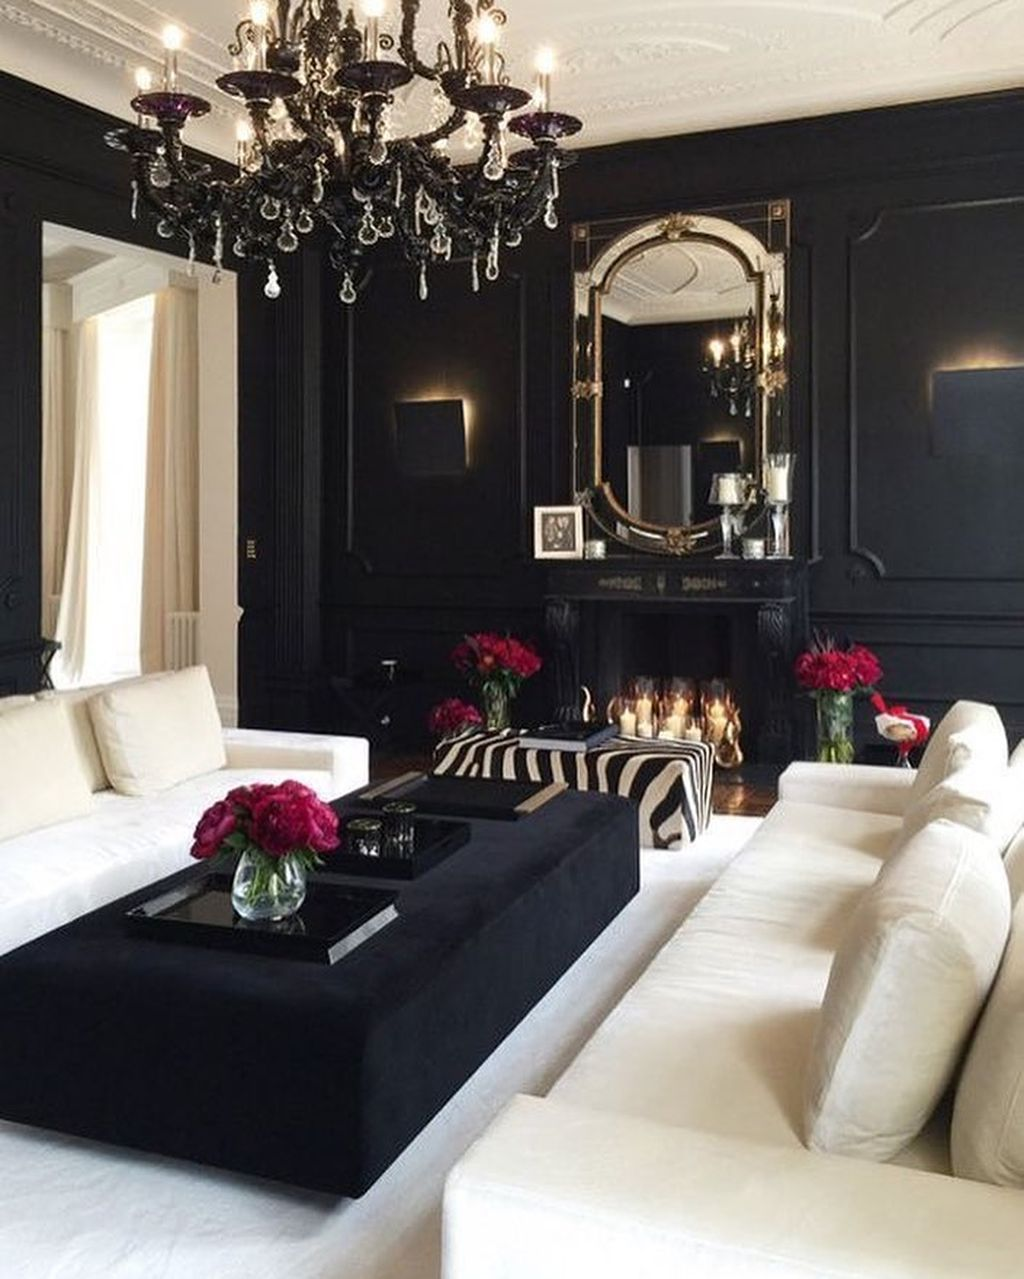 Modern Glam Living Room Decorating Ideas 19: 37 Cool Gothic Living Room Designs Ideas In 2020